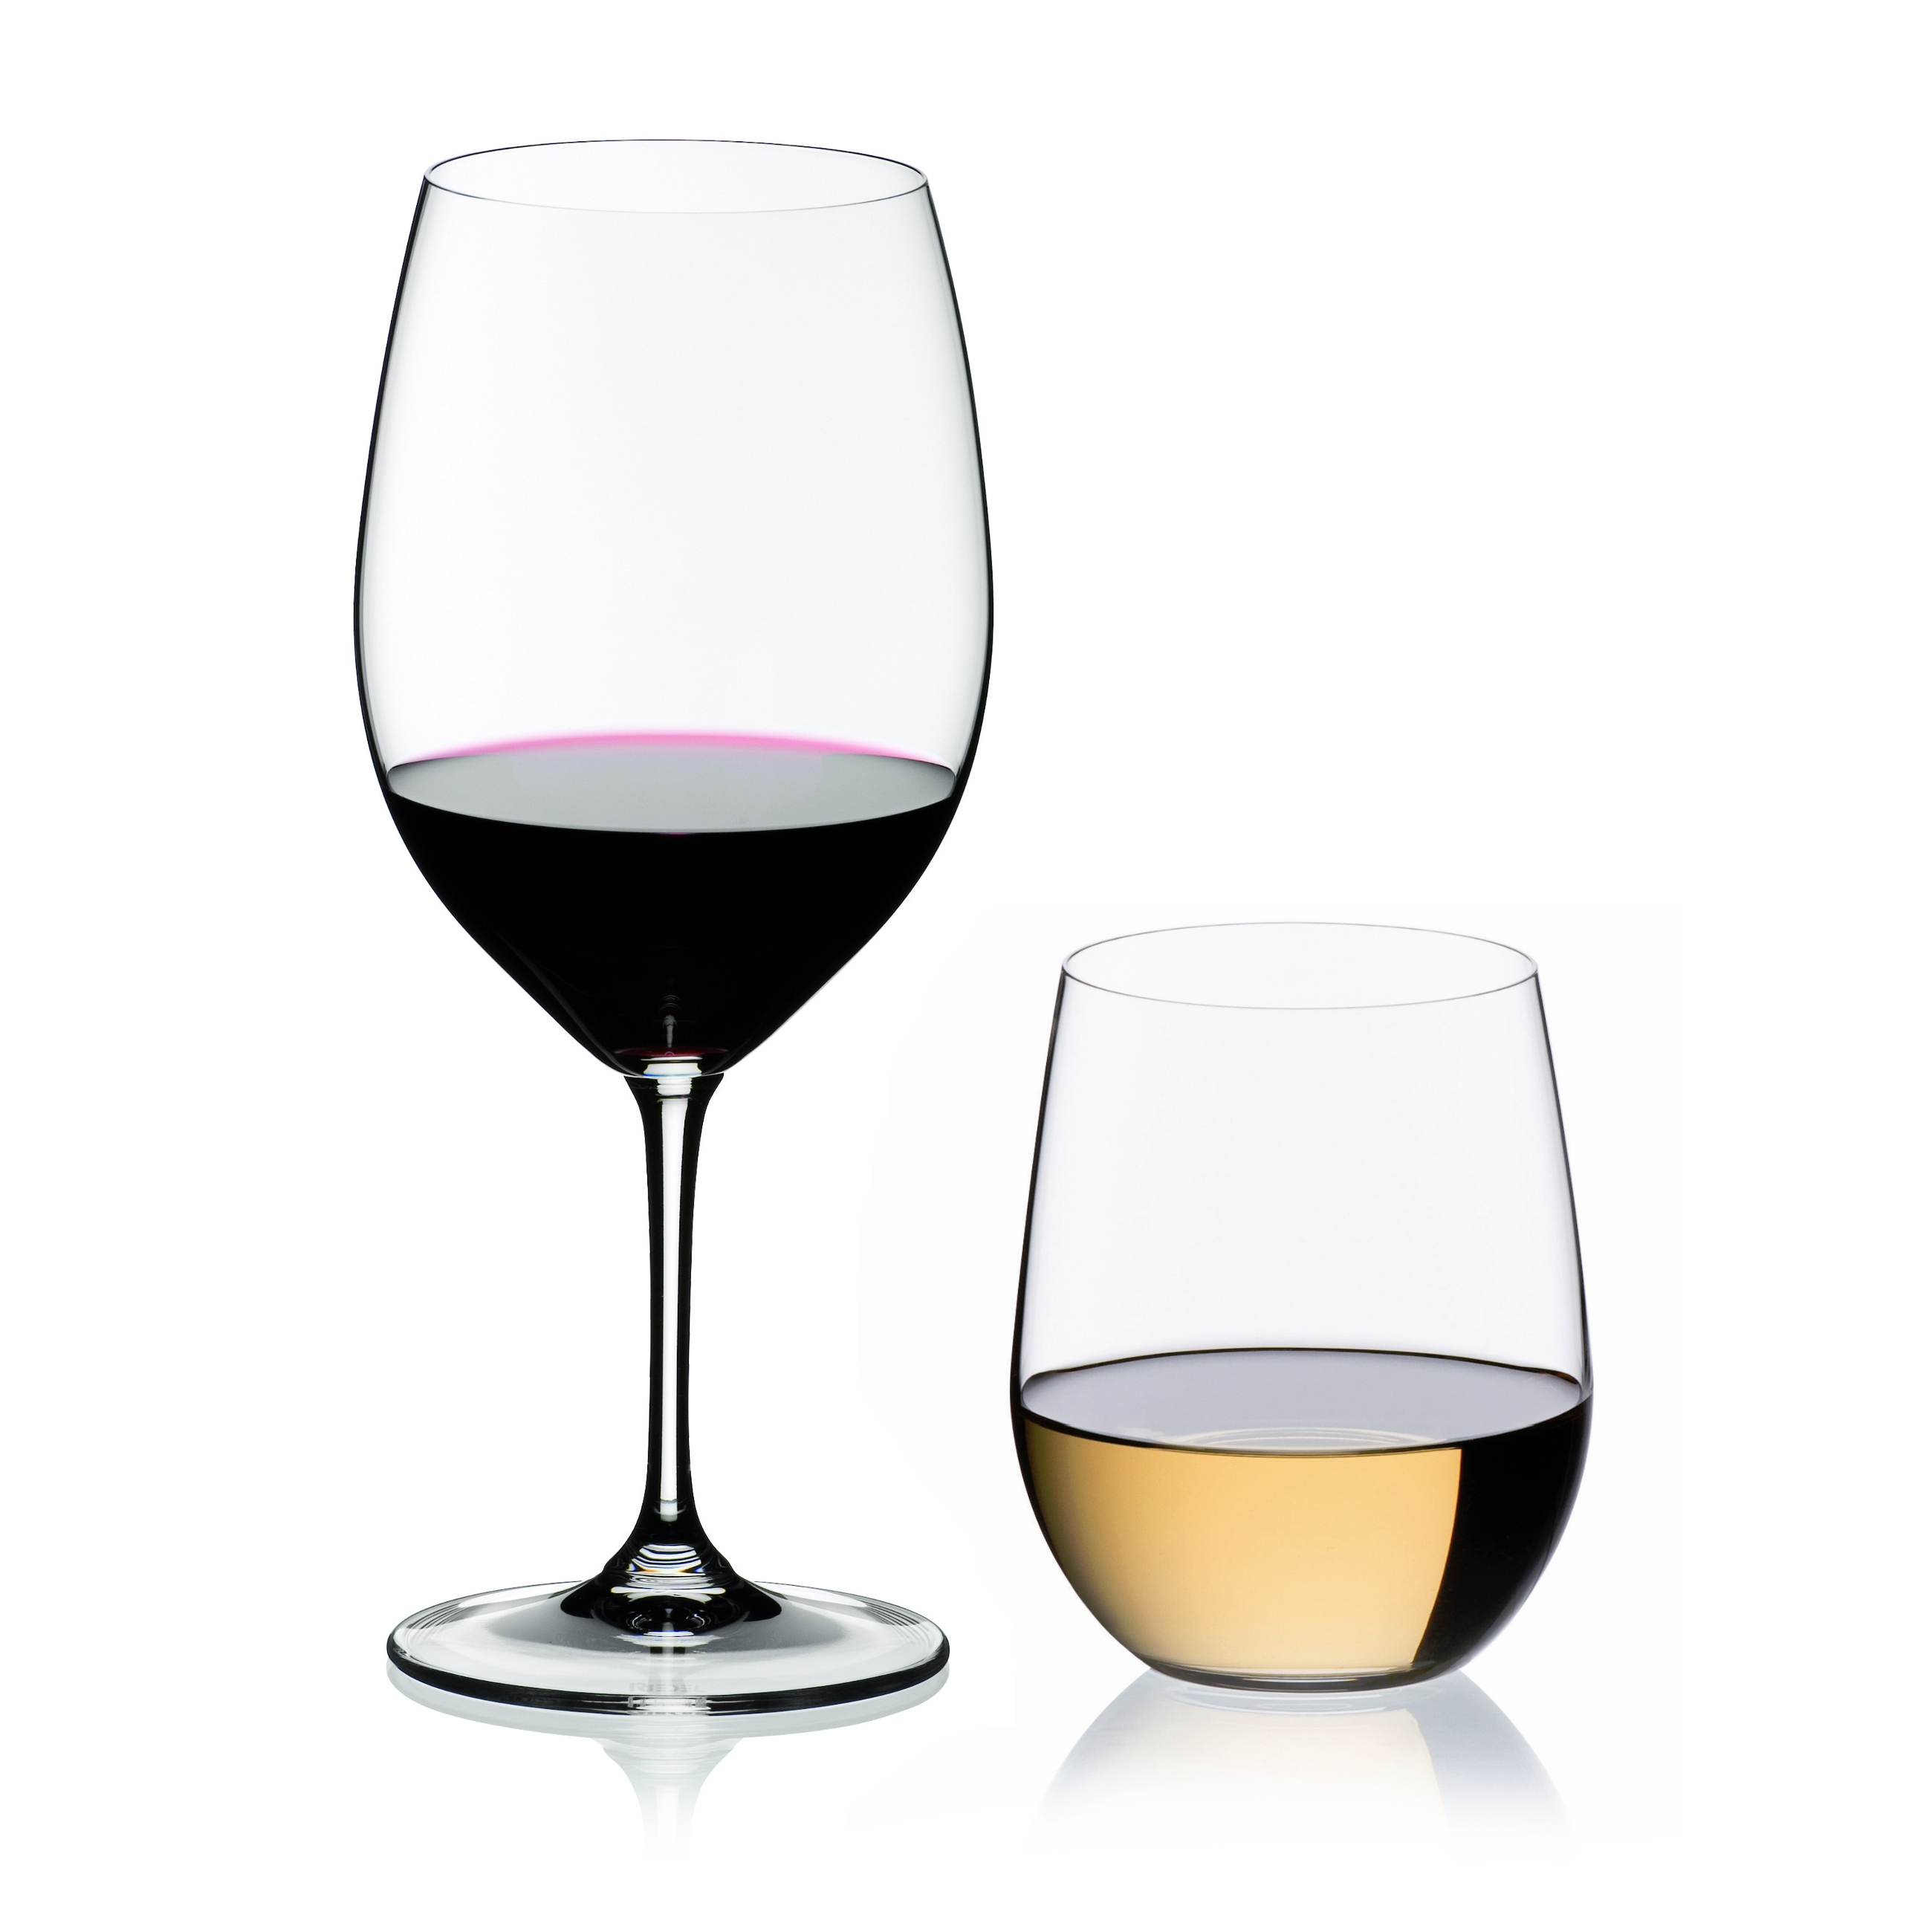 Riedel 4 Piece Vinum XL Cabernet and O Viognier Wine Glass Set, Buy 2 Get 4